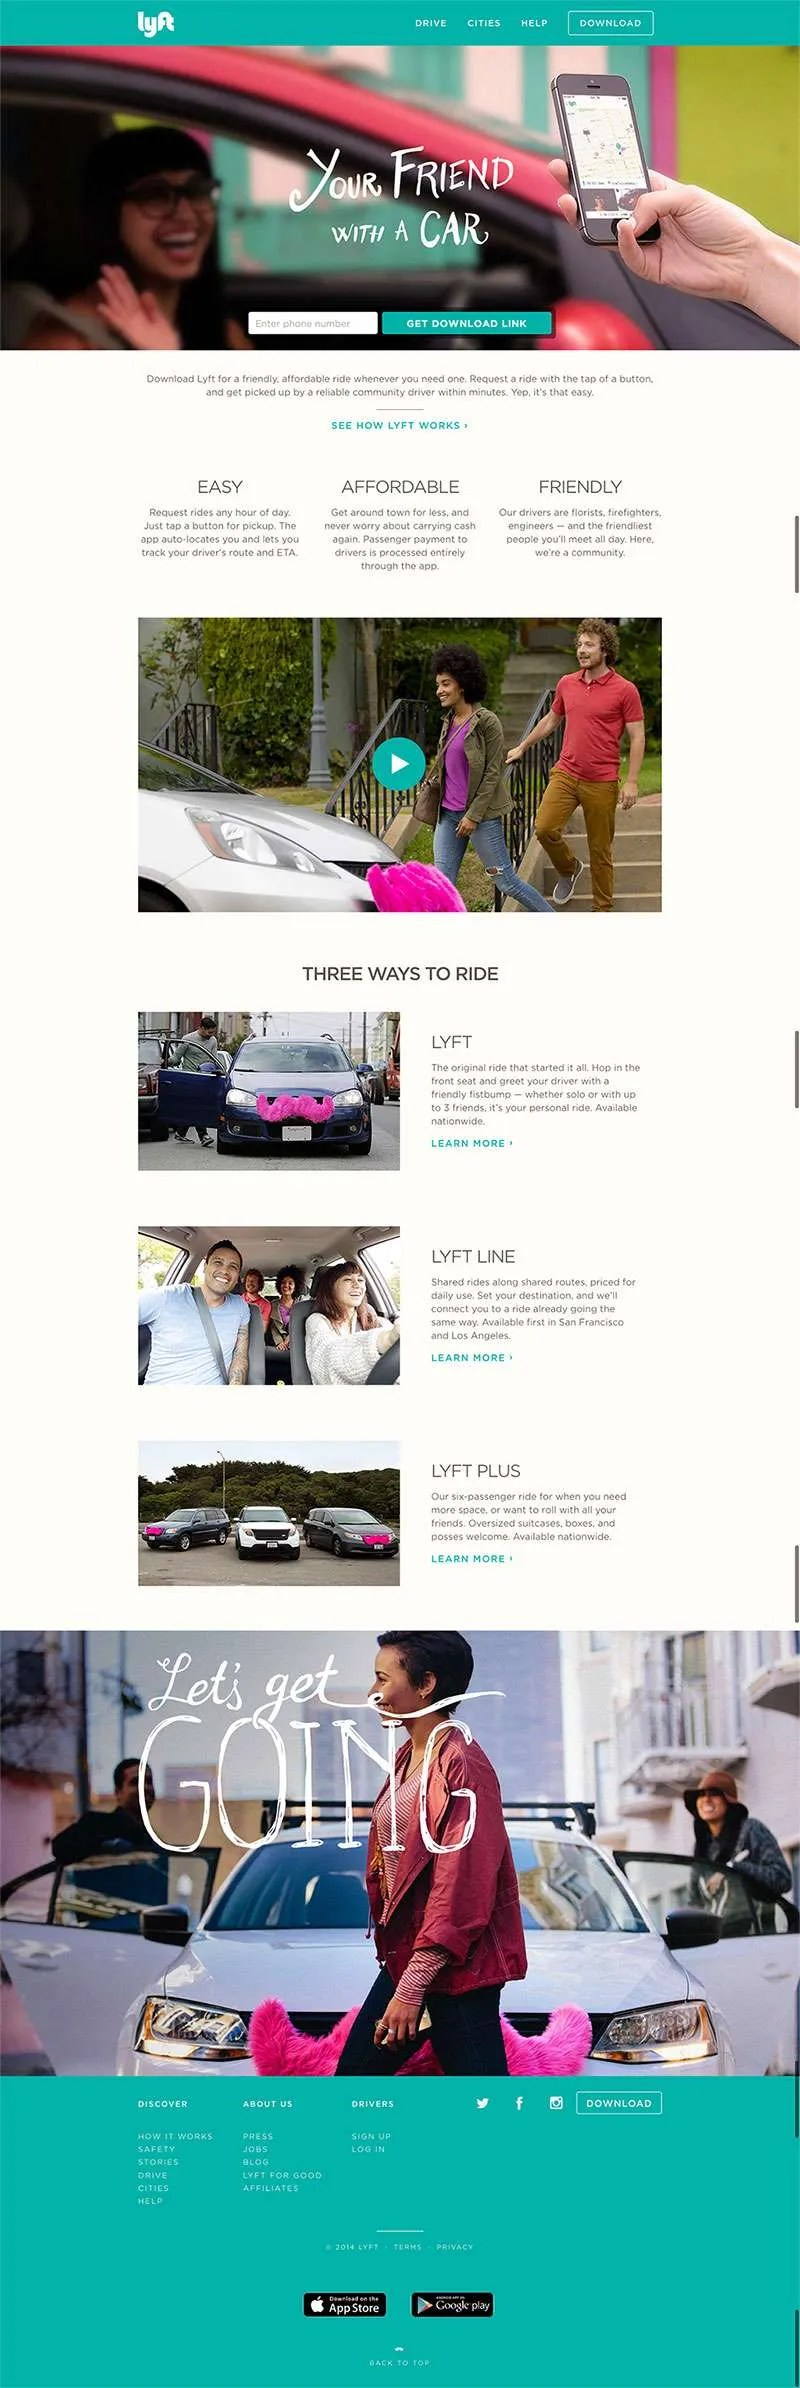 Lyft-Homepage-Entire-Page-Optimized-800